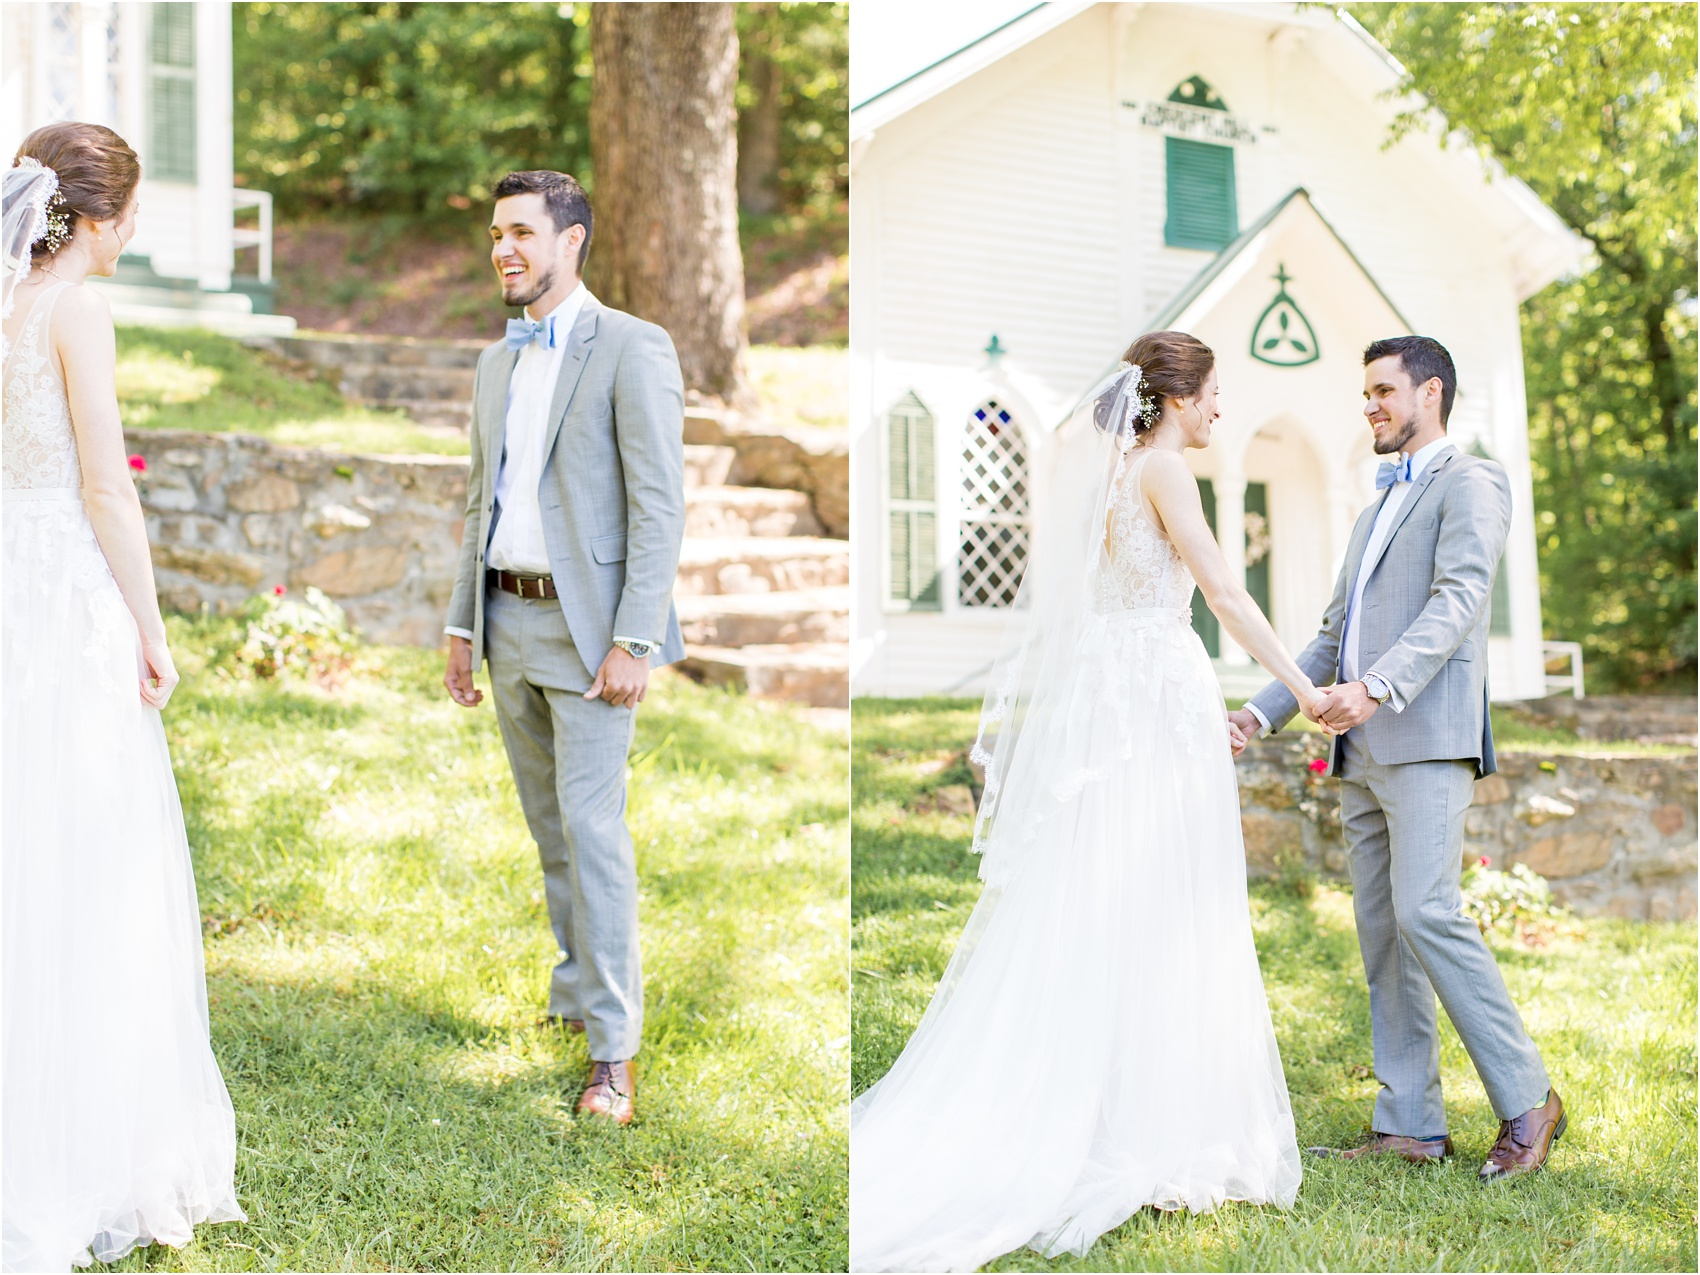 Savannah Eve Photography- Williams Wedding- Blog-14.jpg